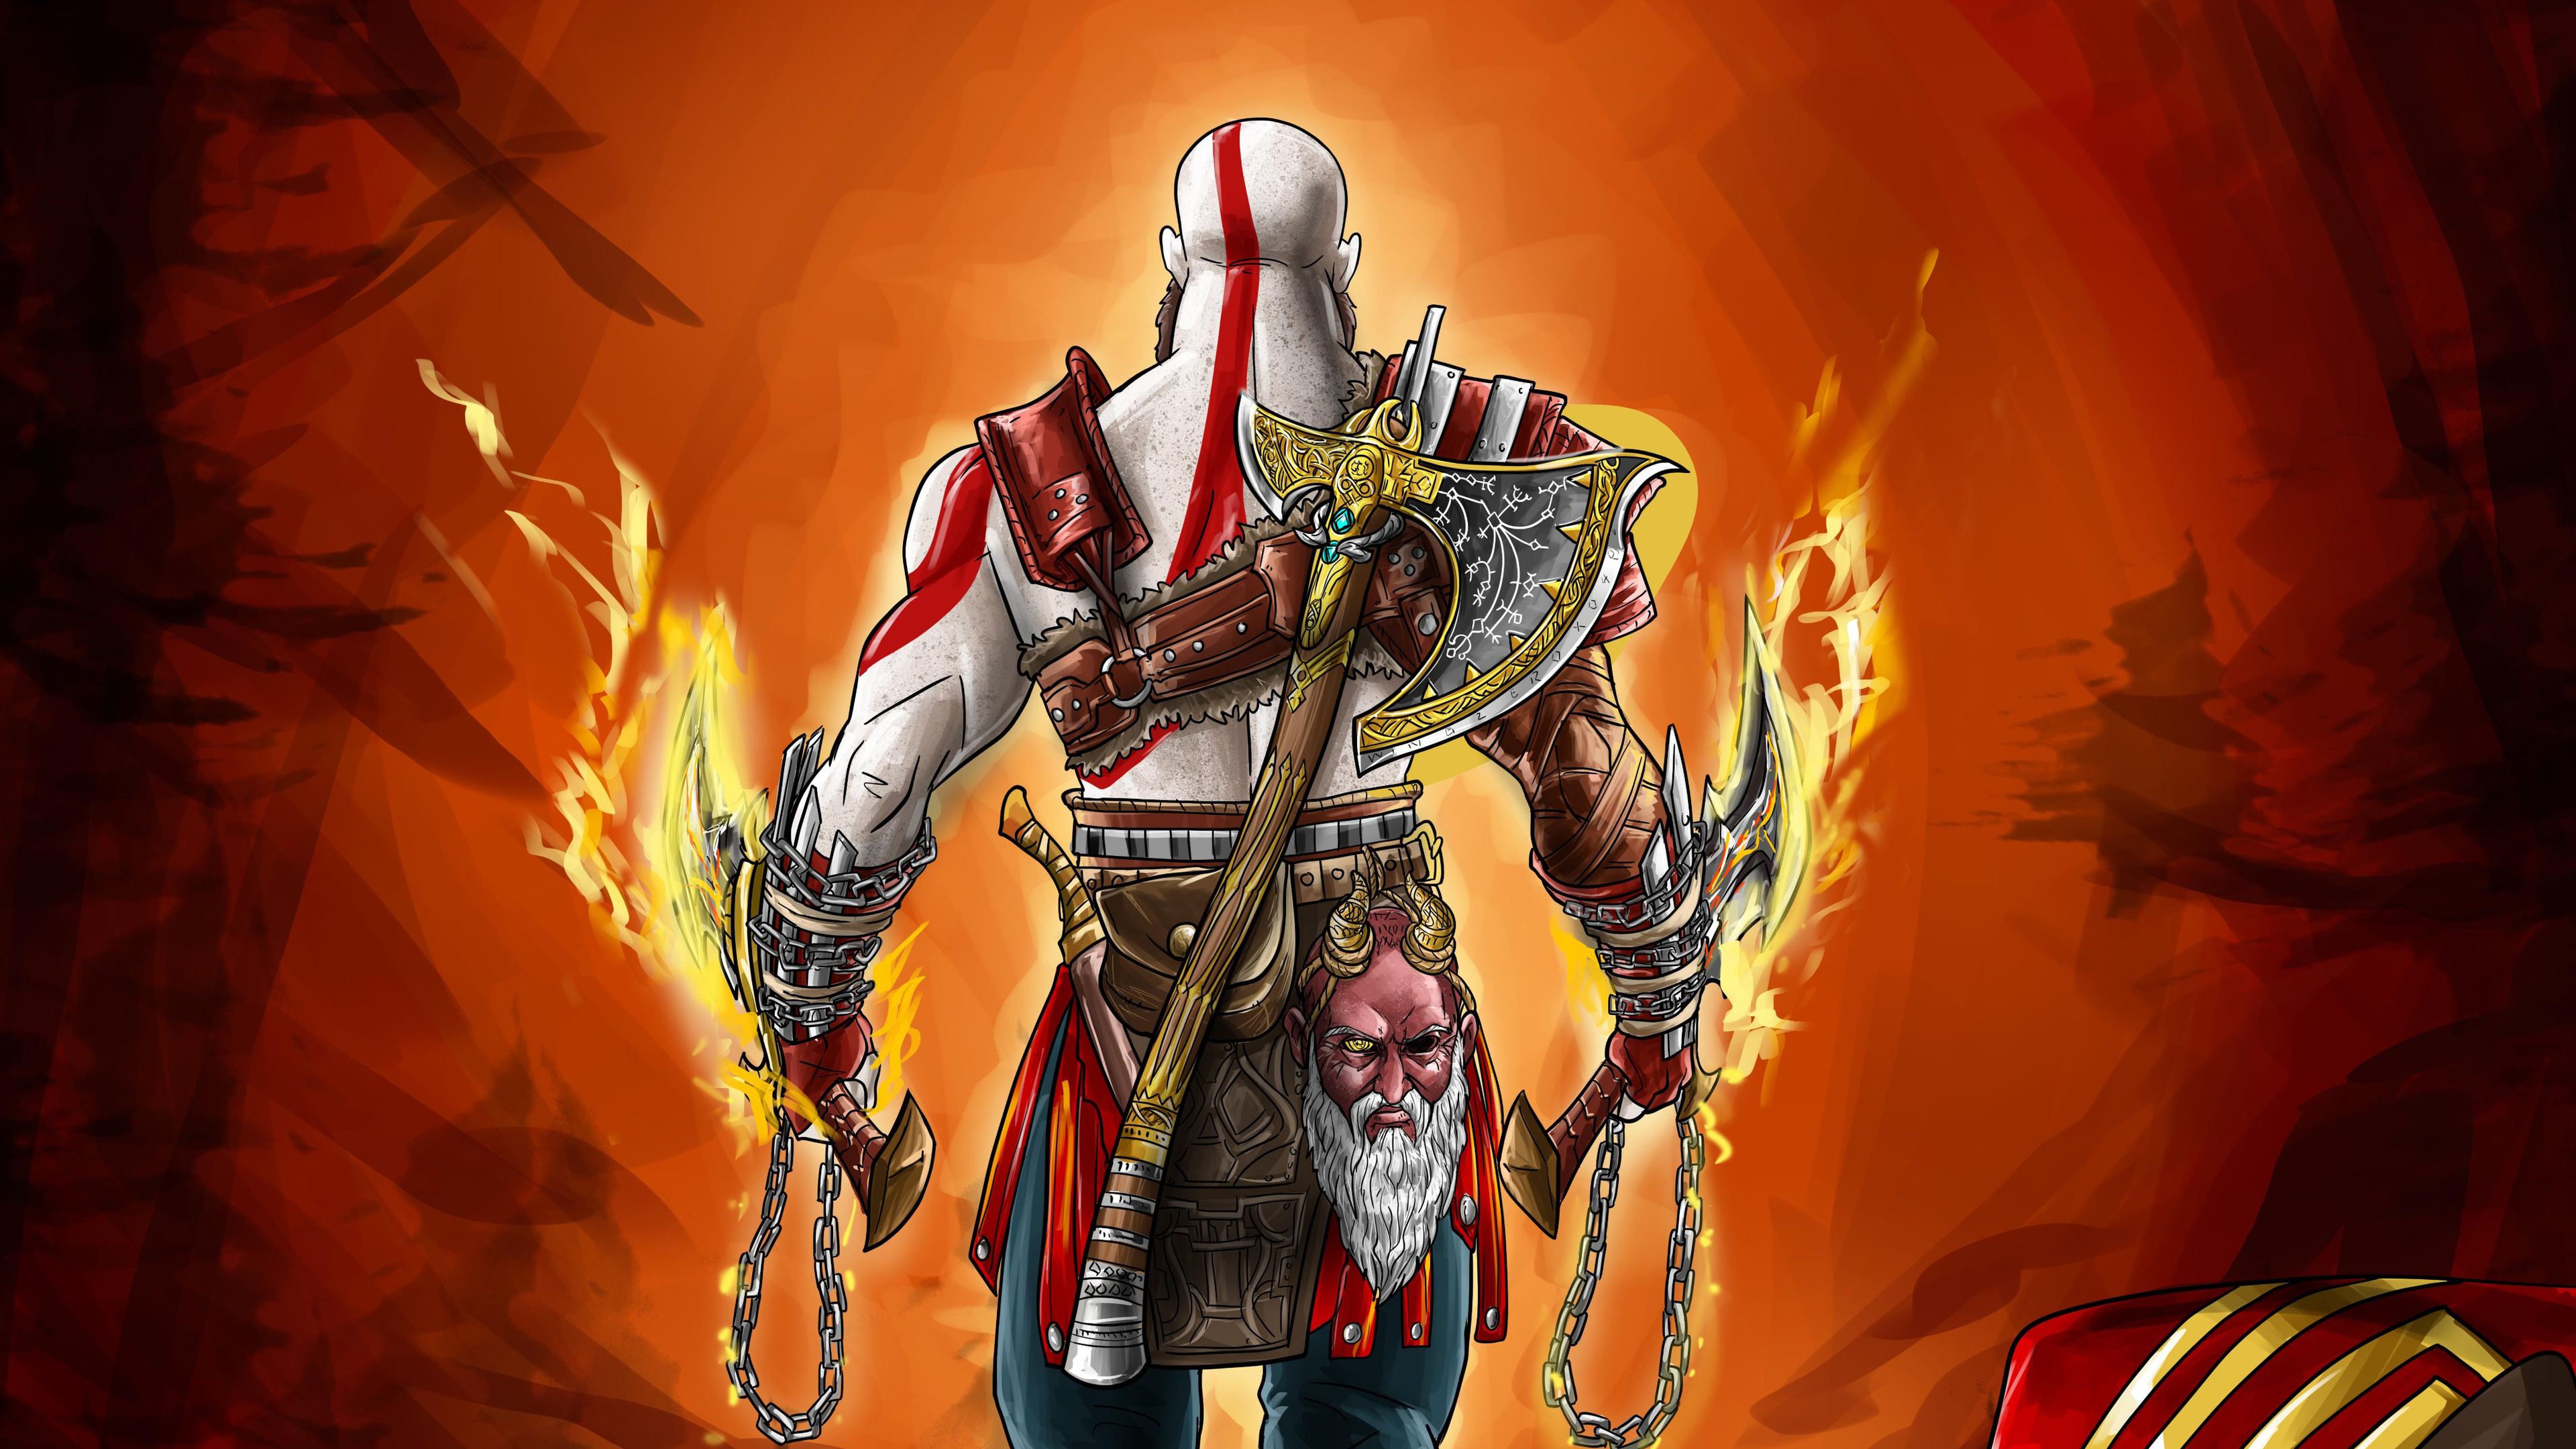 Wallpaper 4k God Of War 4 Digital Art 4k Wallpapers Games